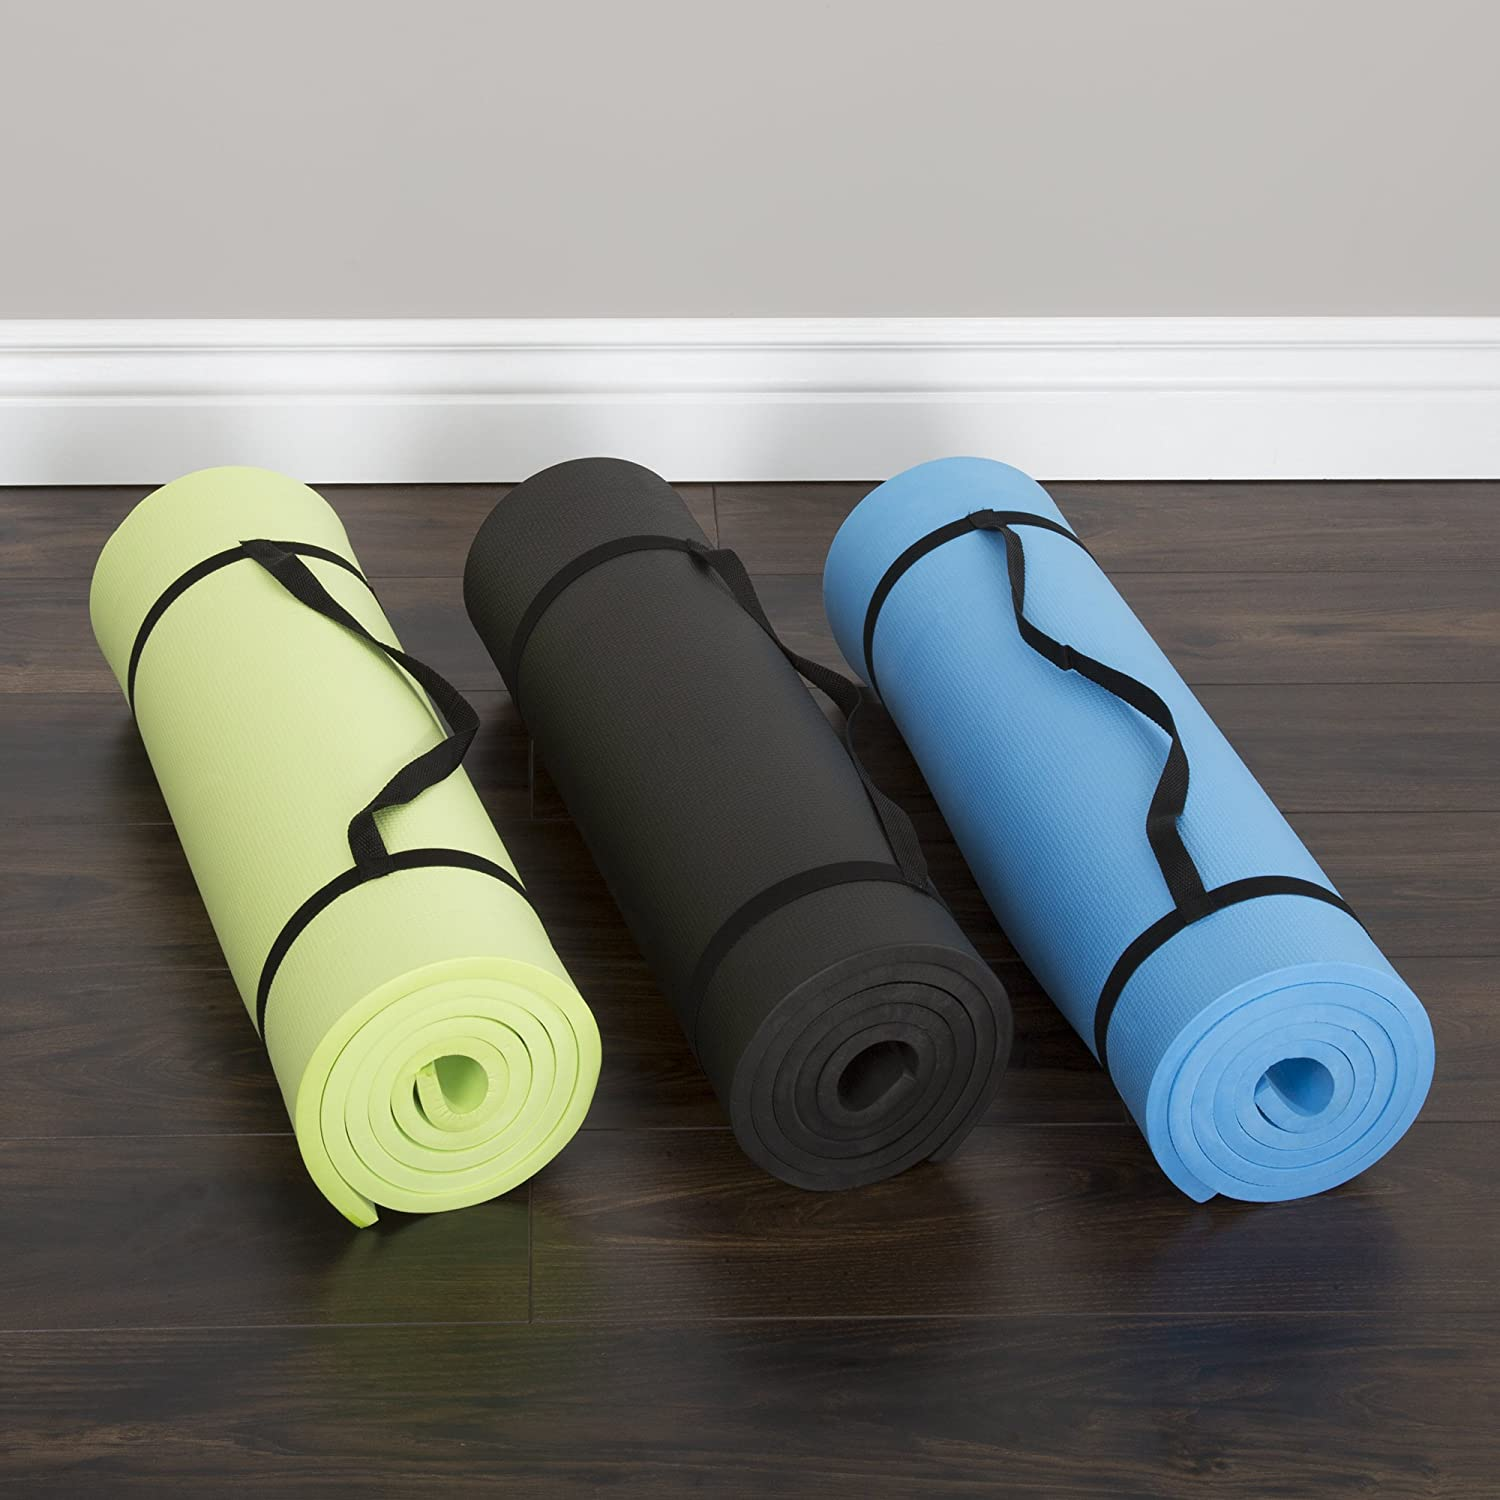 Extra Thick Yoga Mat- Non Slip Comfort Foam, Durable Exercise Mat For Fitness, Pilates and Workout With Carrying Strap By Wakeman Fitness (Black): Sports & Outdoors